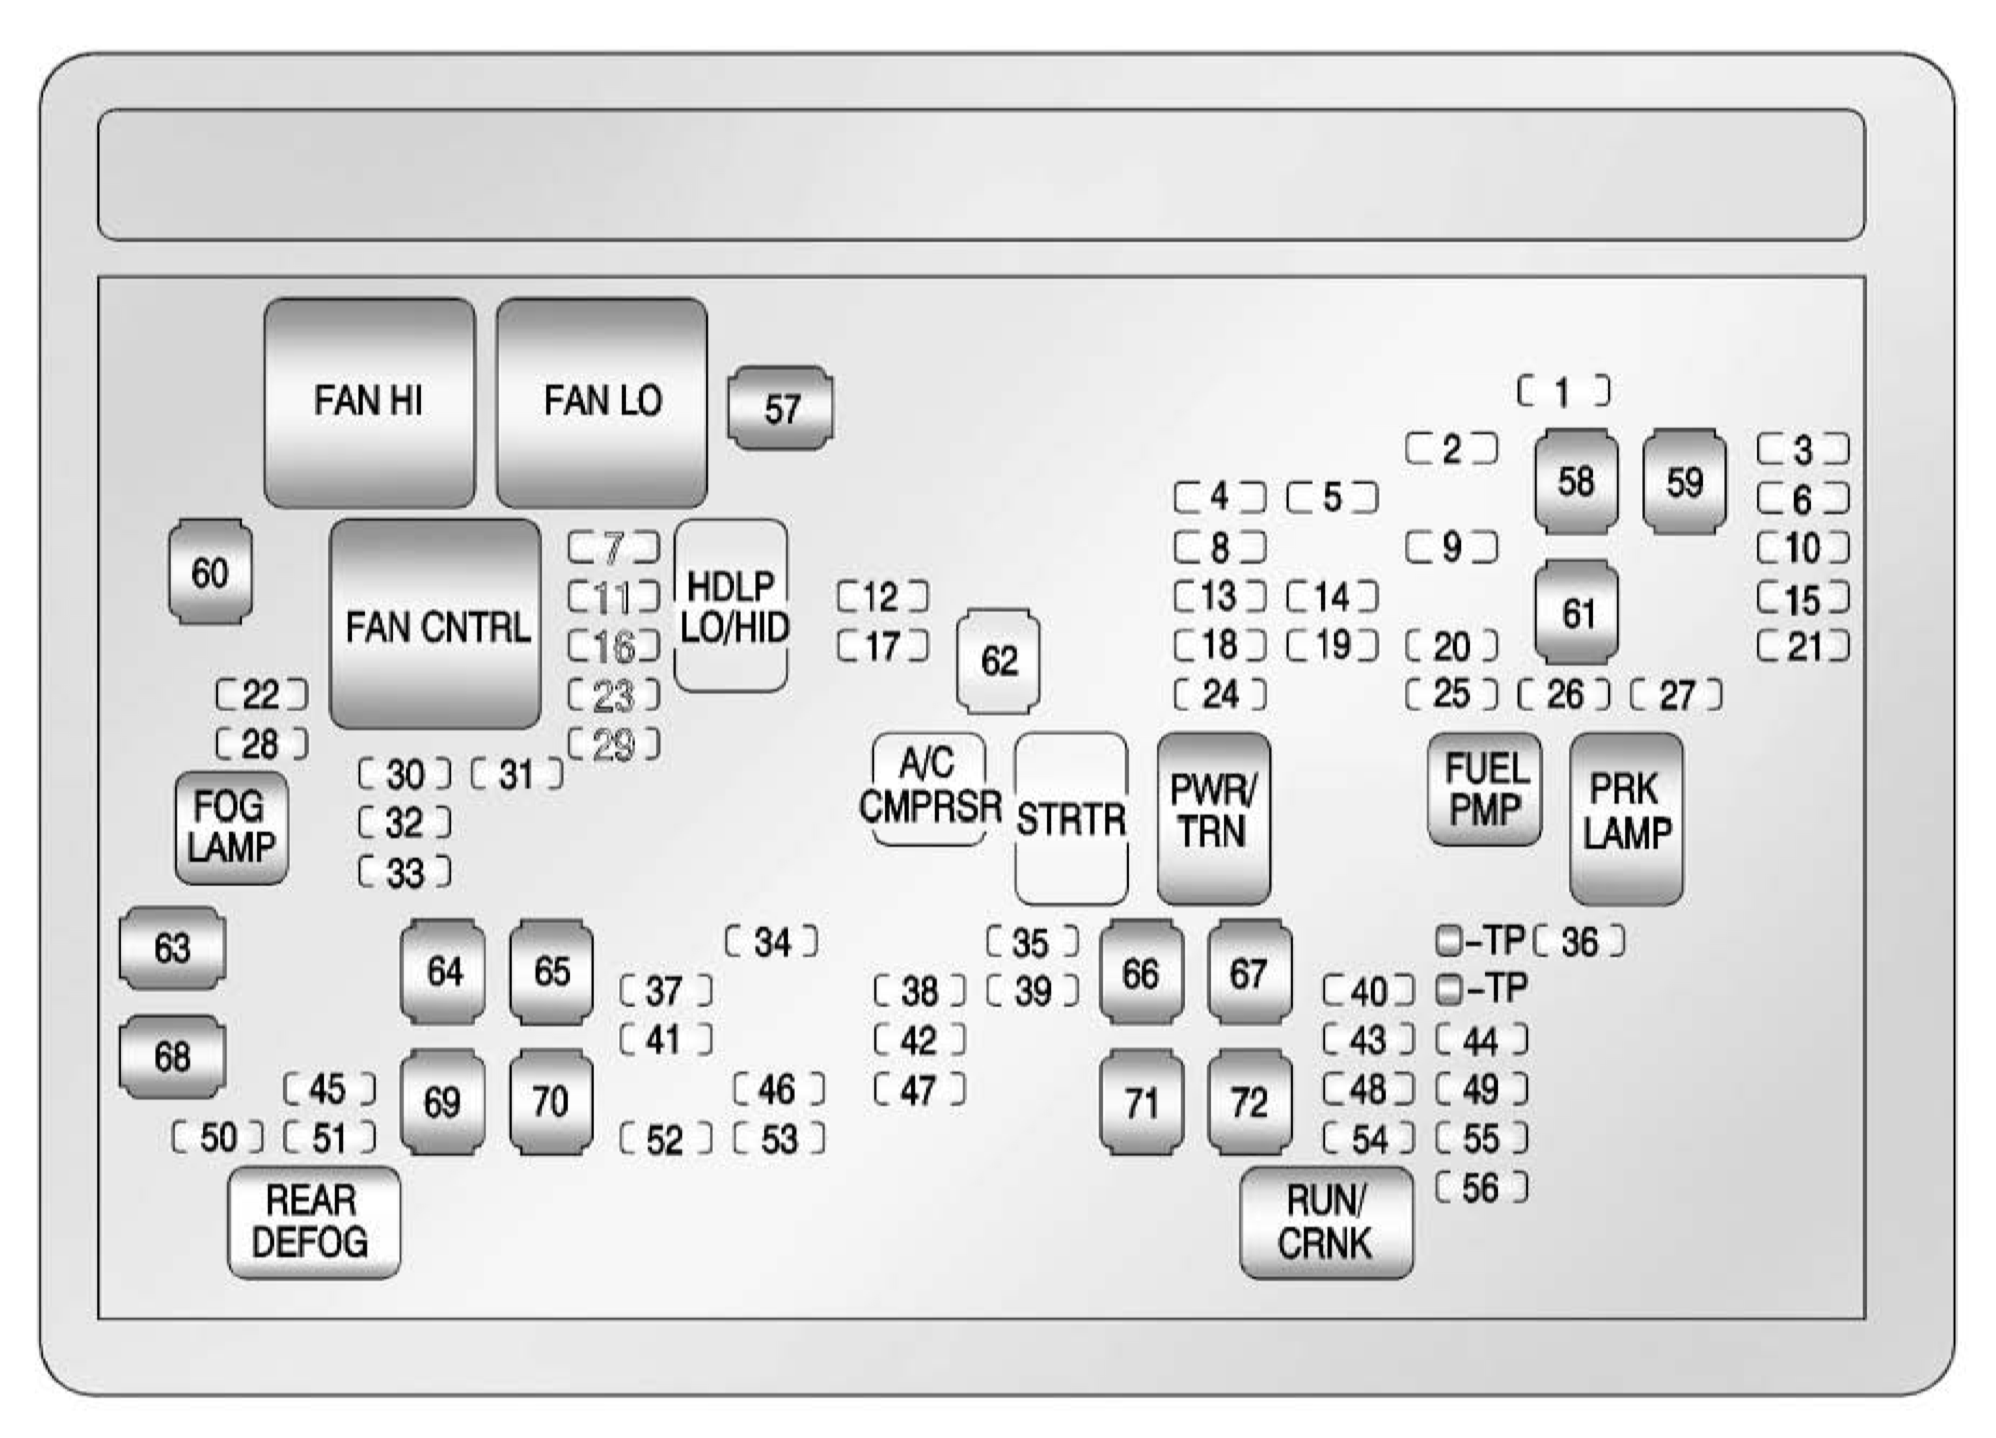 07 tahoe fuse diagram - wiring diagram just-delta-b -  just-delta-b.cinemamanzonicasarano.it  cinemamanzonicasarano.it